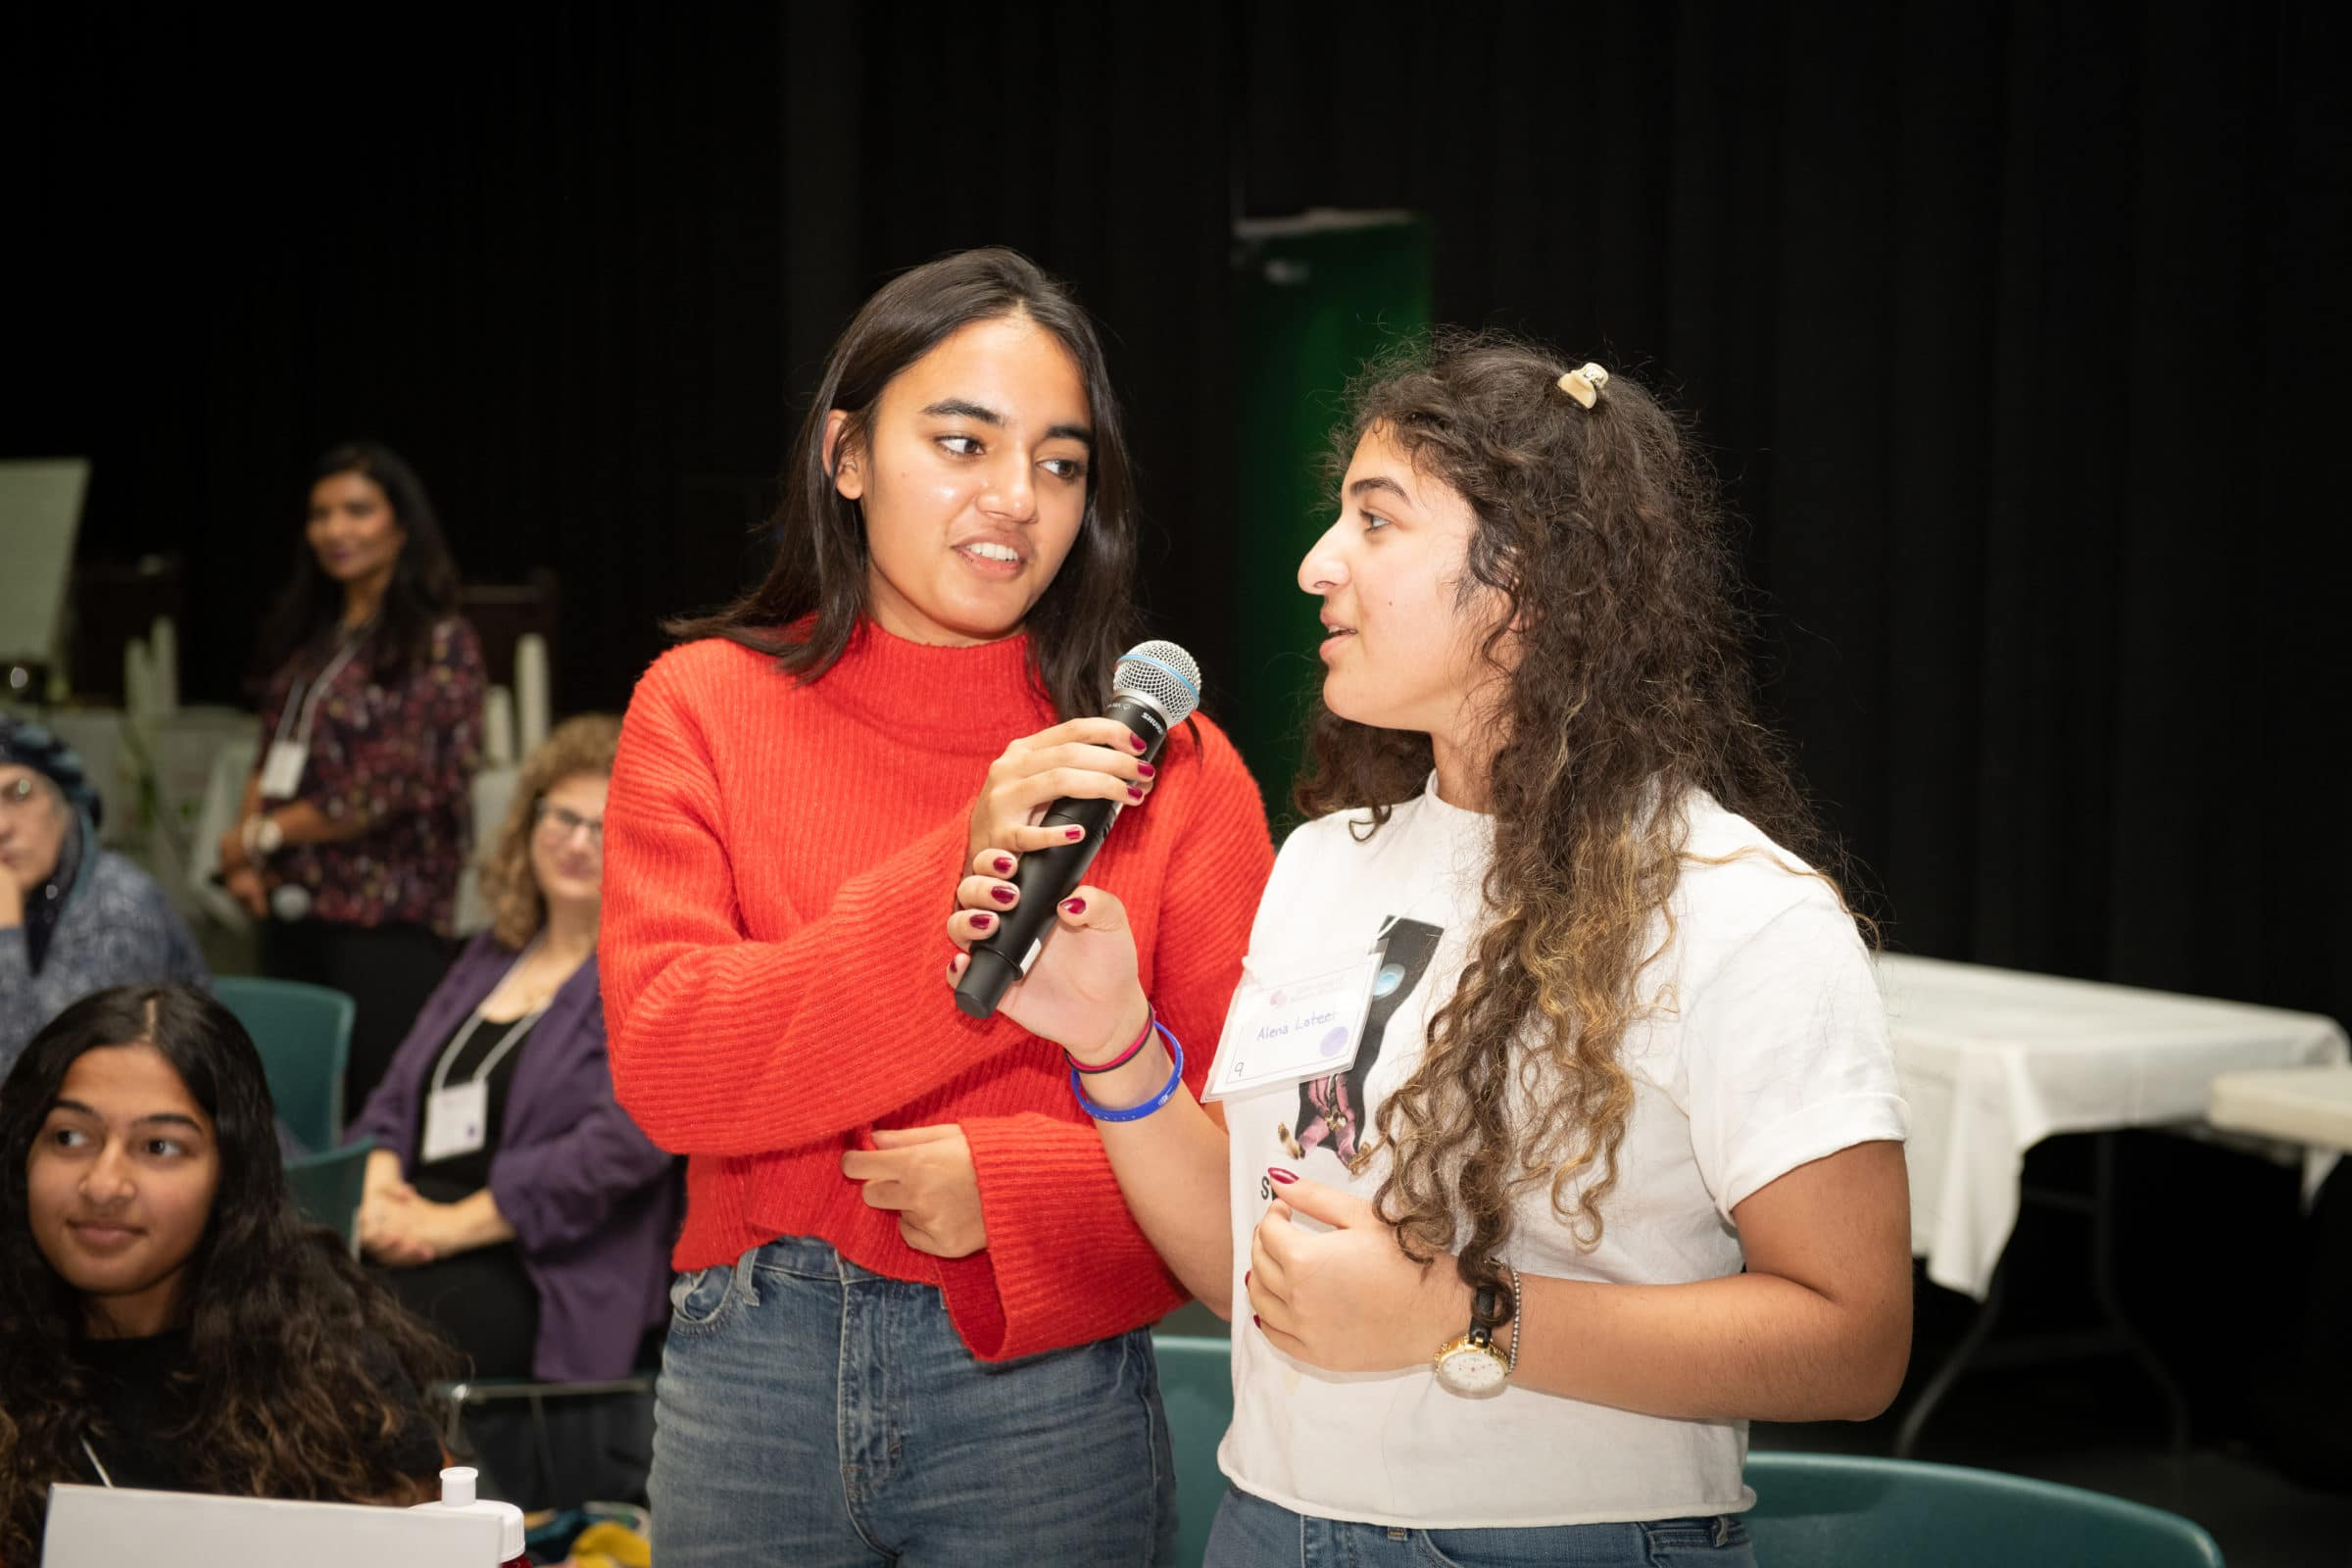 teen in orange sweater holding microphone for second teen in white t-shirt